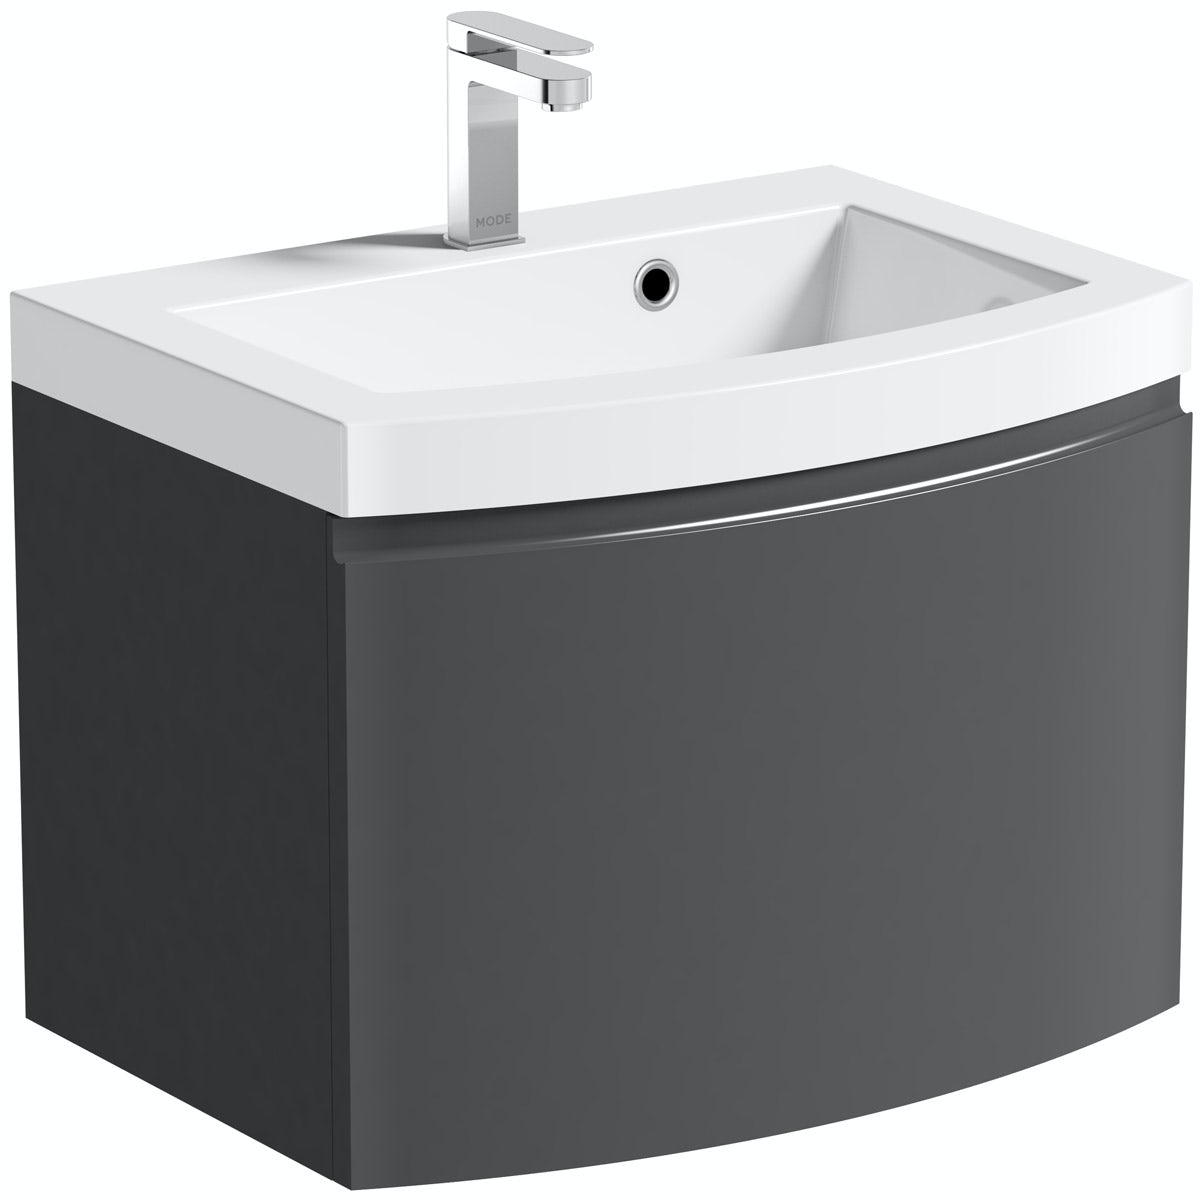 Mode Harrison slate gloss grey wall hung vanity unit and basin 600mm